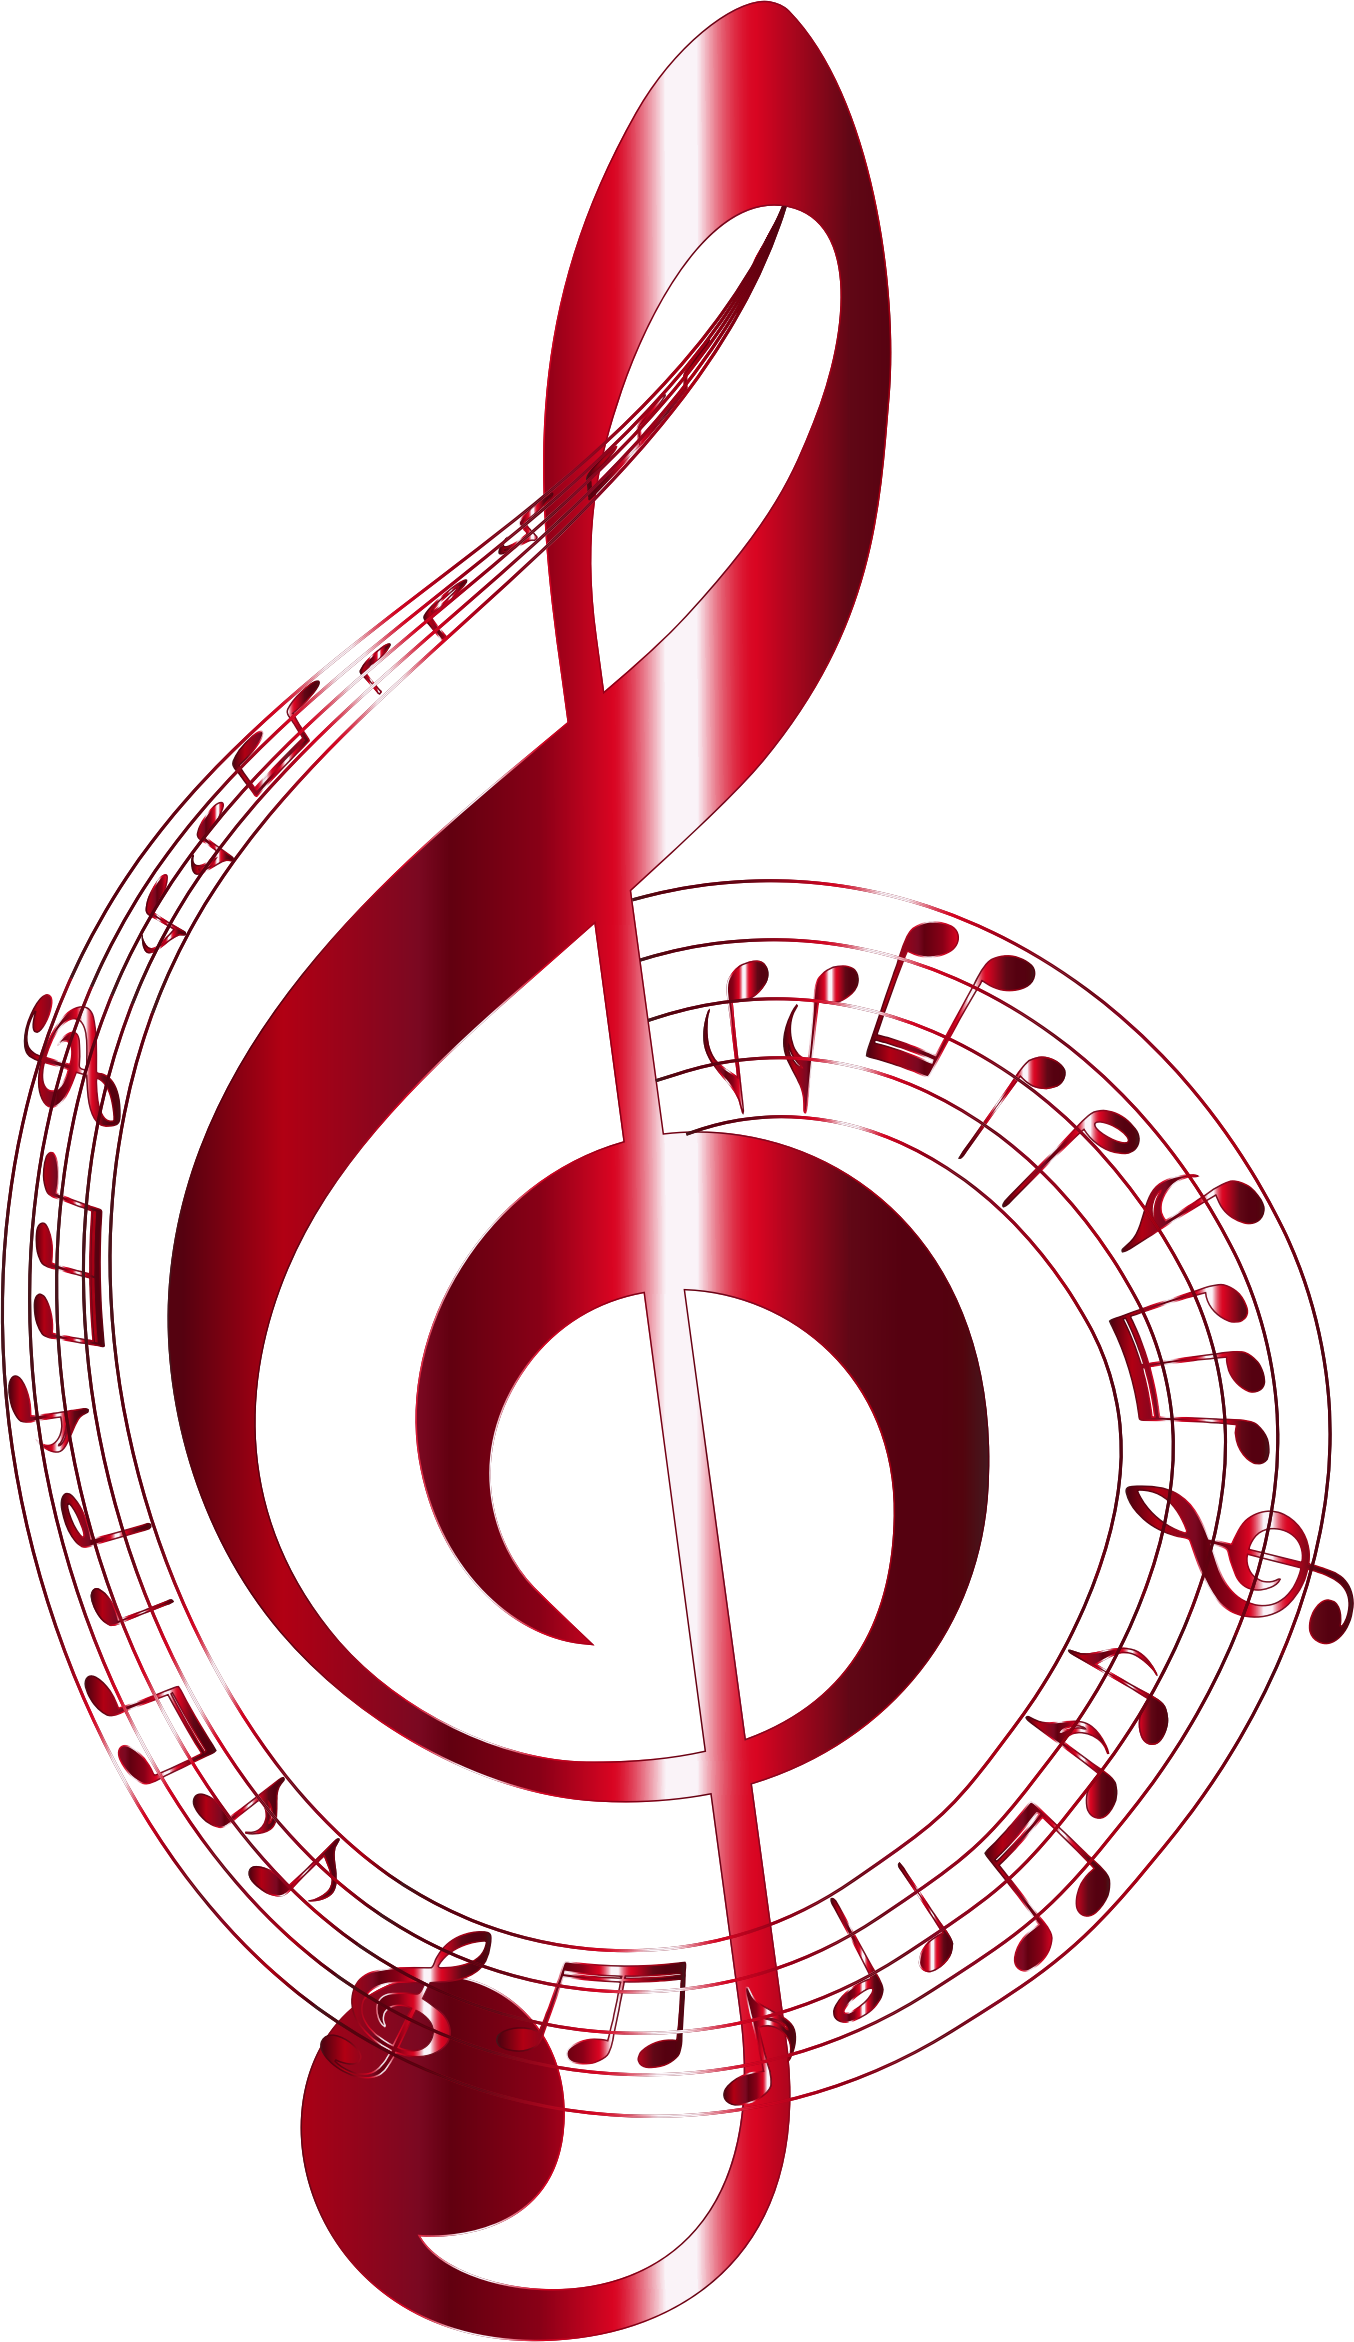 Music Notation Notes Vermilion Musical Notes Typography No Background By Gdj